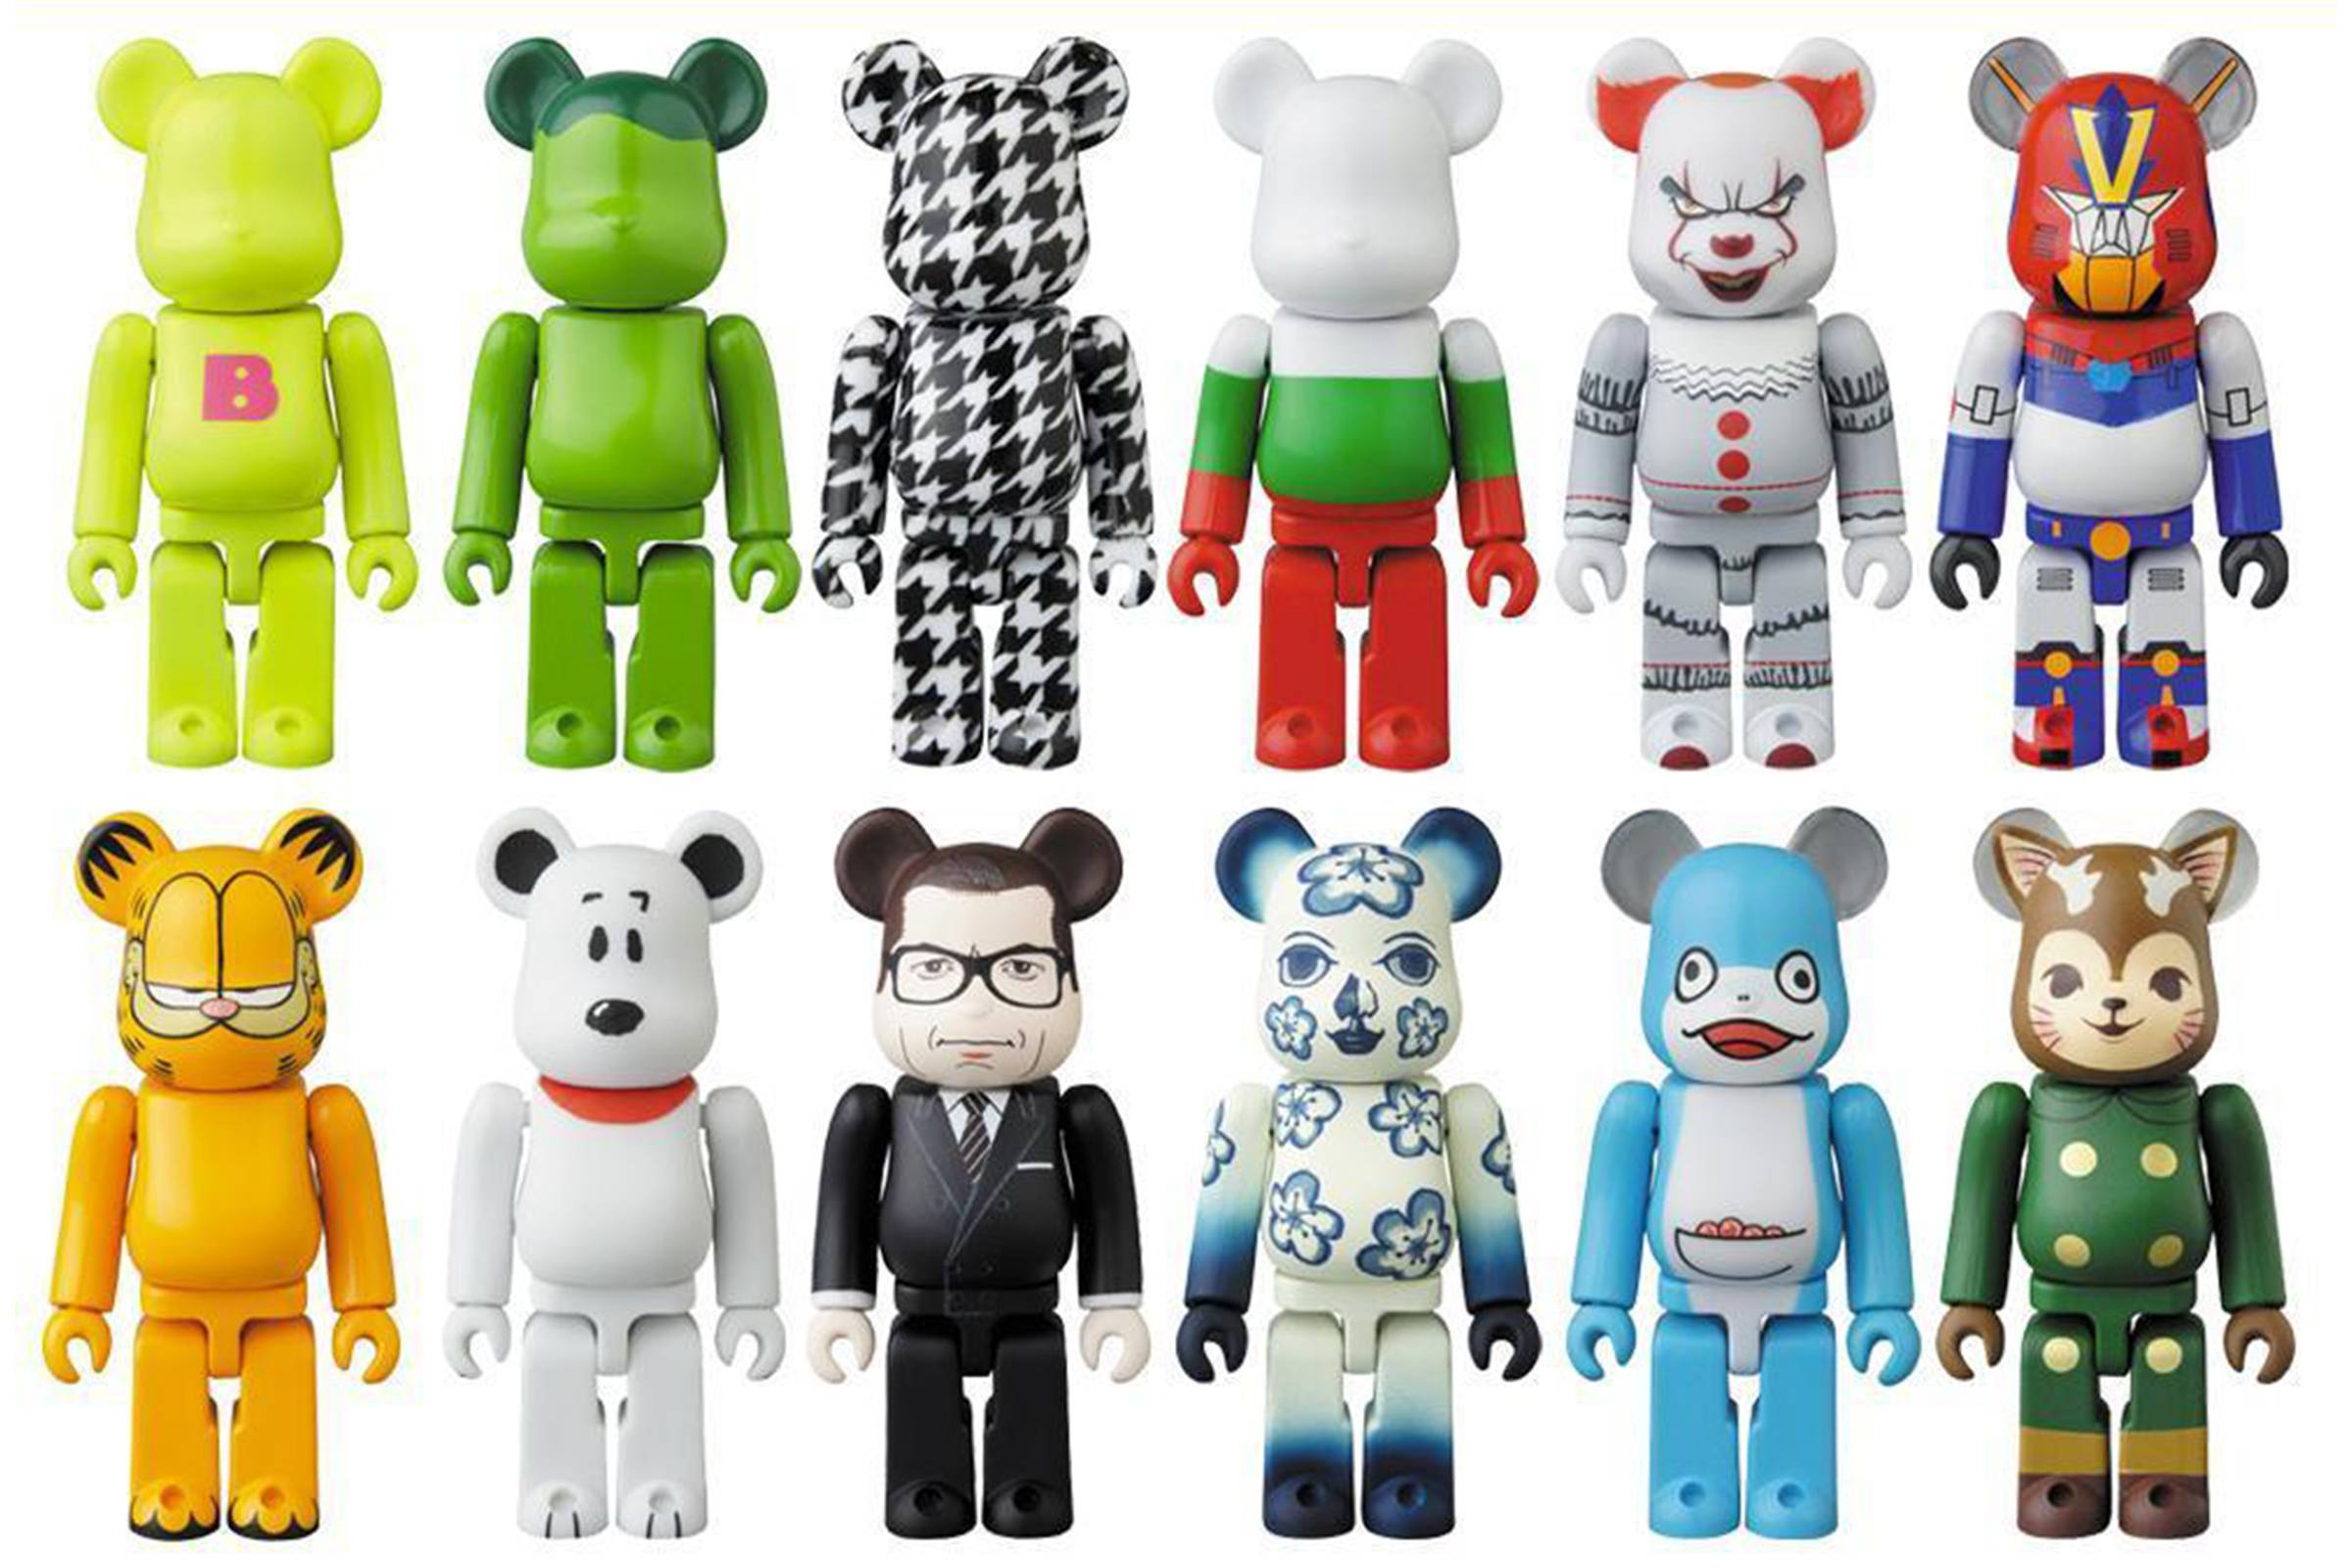 BE@RBRICK Series 36, released earlier this year